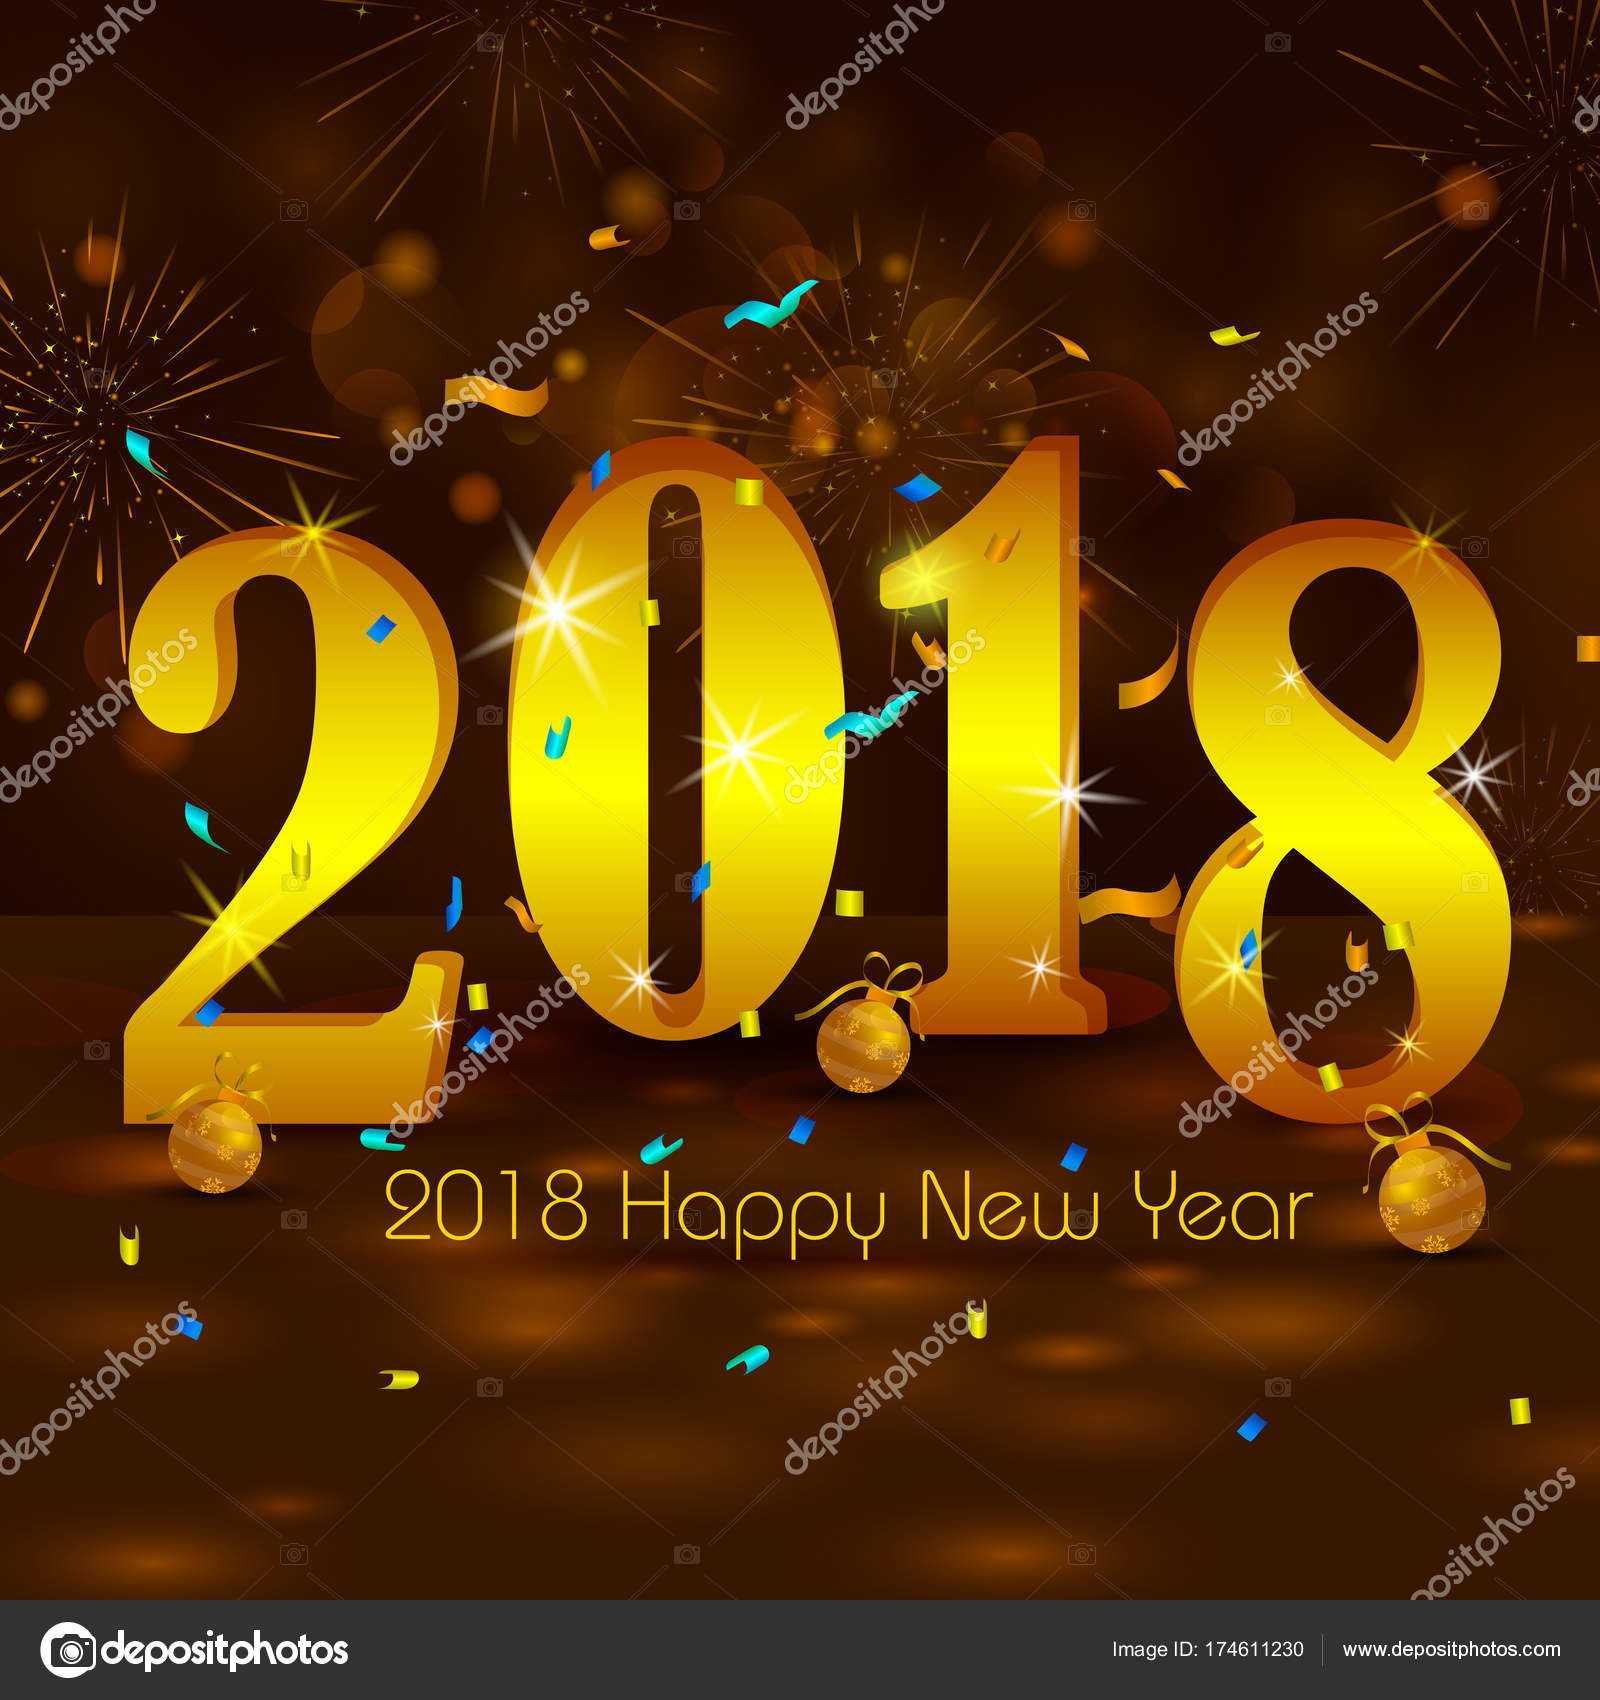 happy new year 2018 wishes greeting card template background design stock vector